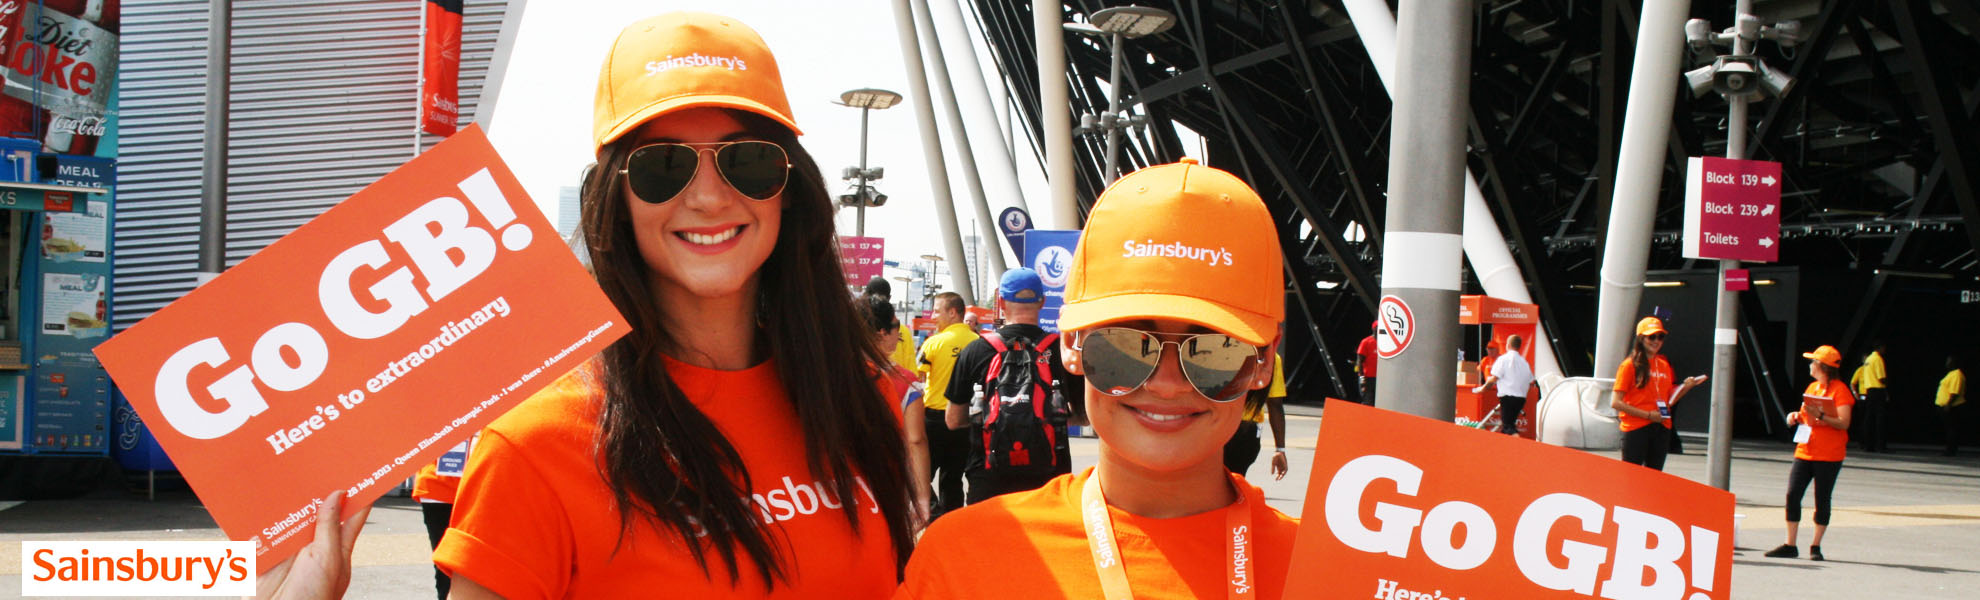 Promotional Staff promoting Sainsburys at event